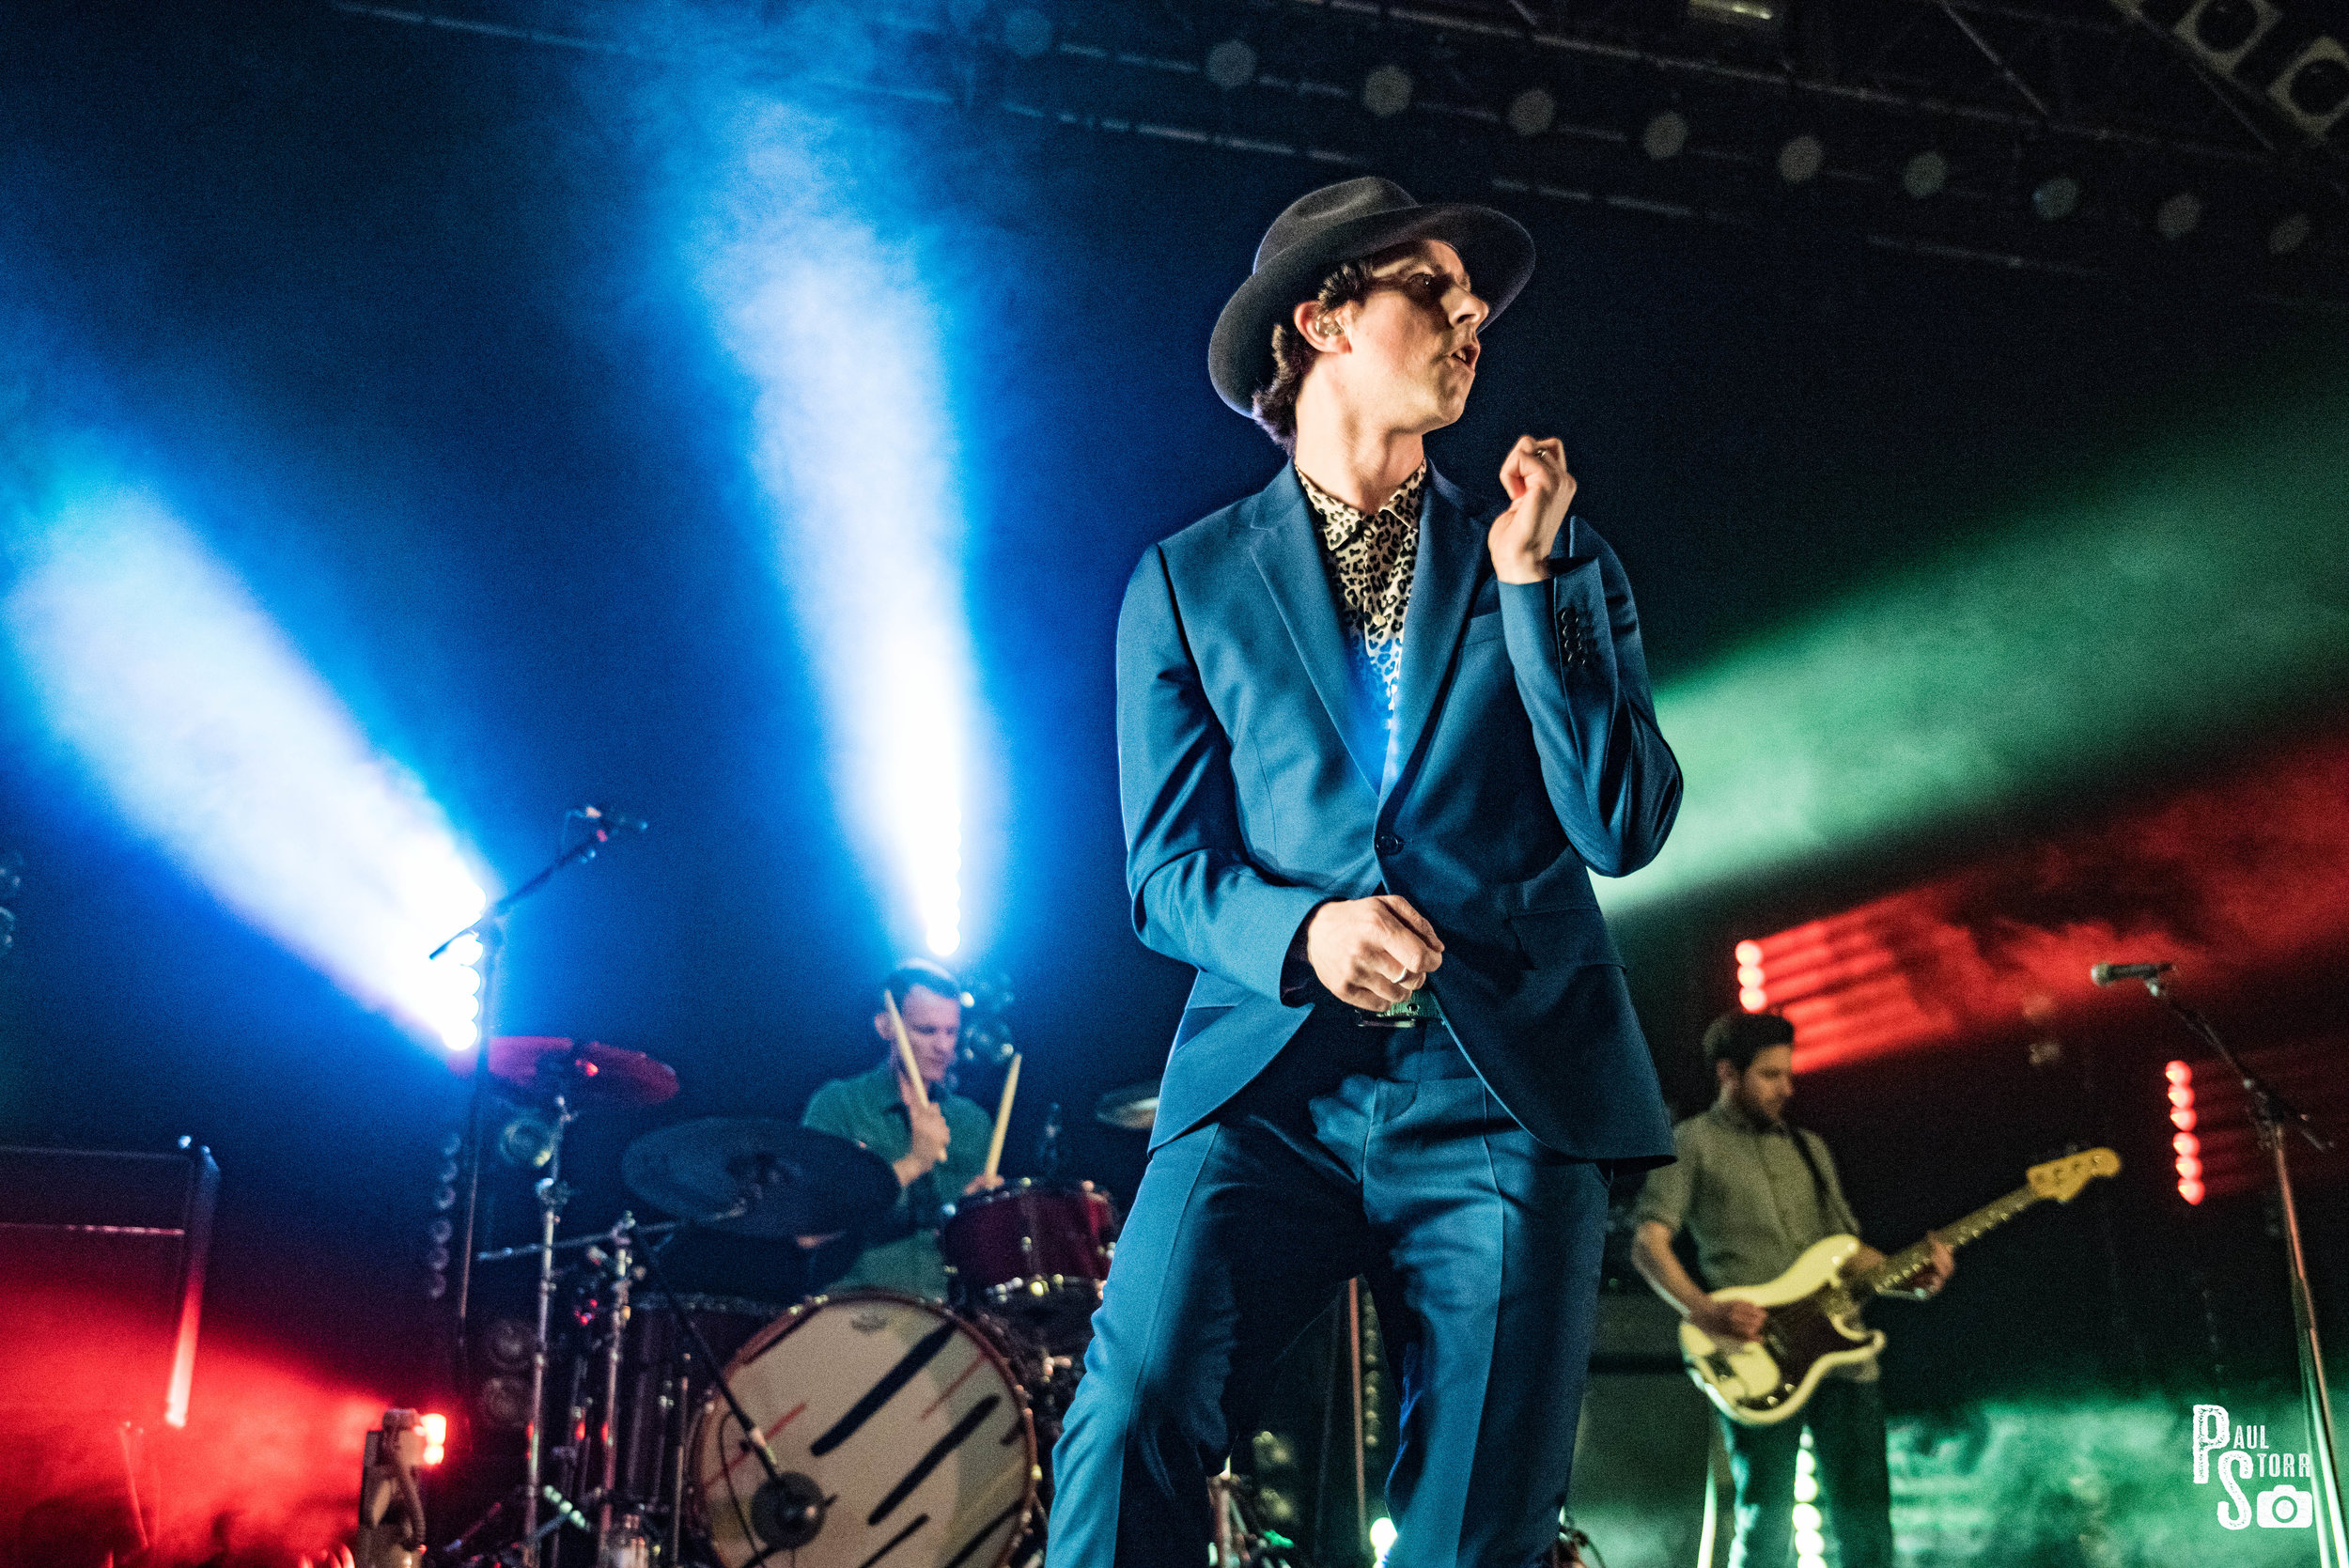 MAXIMO PARK PERFORMING AT GLASGOW'S O2 ABC - 09/05/2017   PICTURE BY: PAUL STORR PHOTOGRAPHY